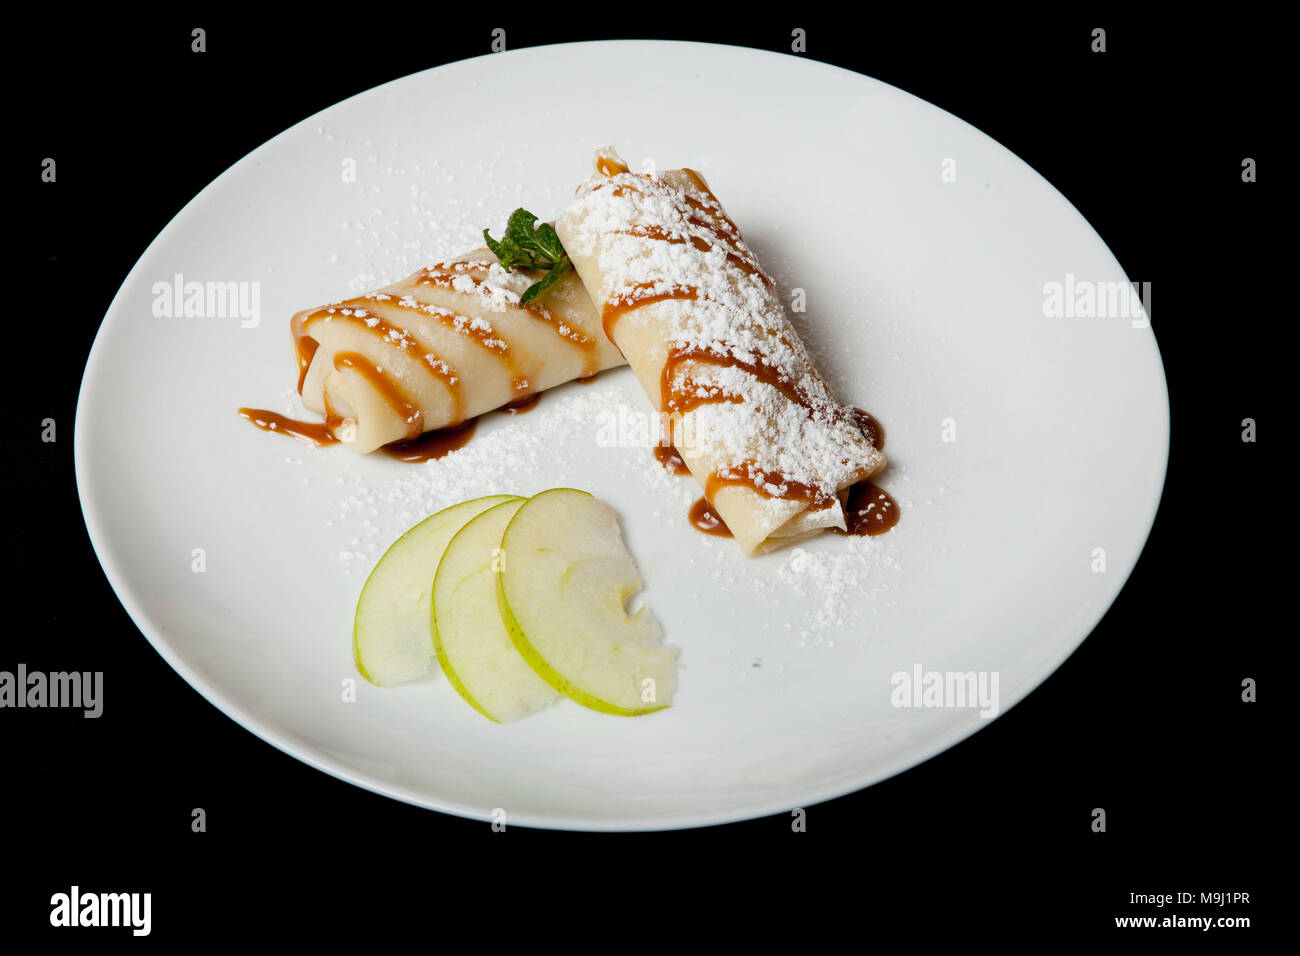 Pancakes with apples on a black background. Restaurant menu. Stock Photo